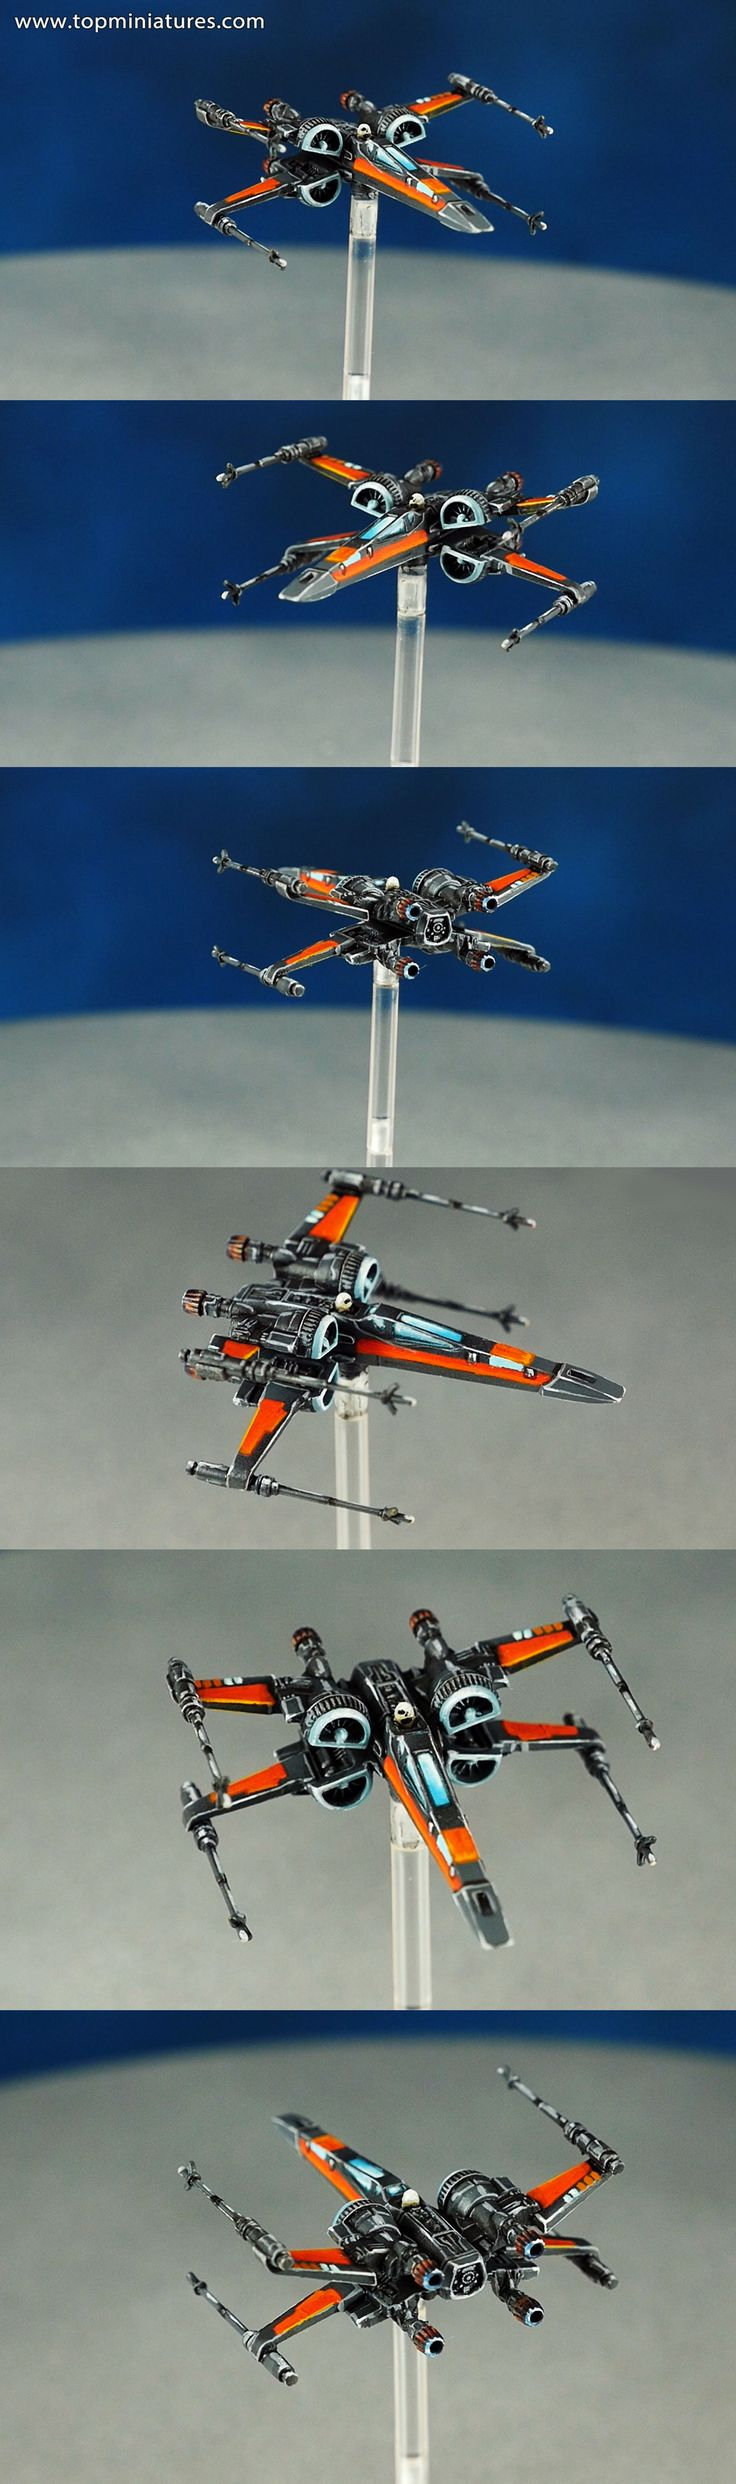 star wars x-wing t-70